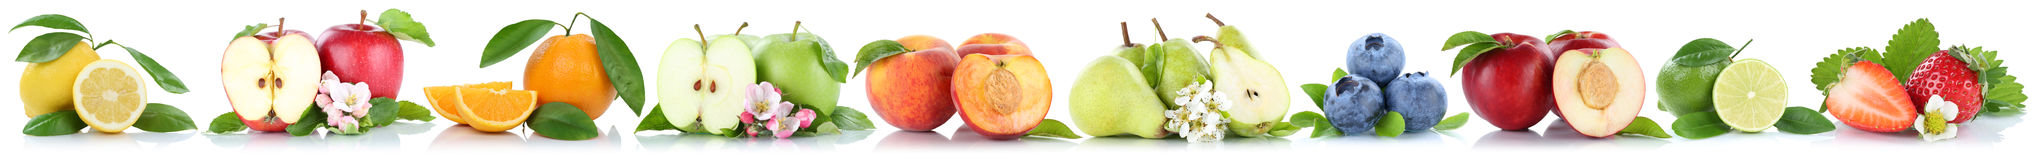 Fruits apple orange apples oranges in a row isolated on white Royalty Free Stock Photography